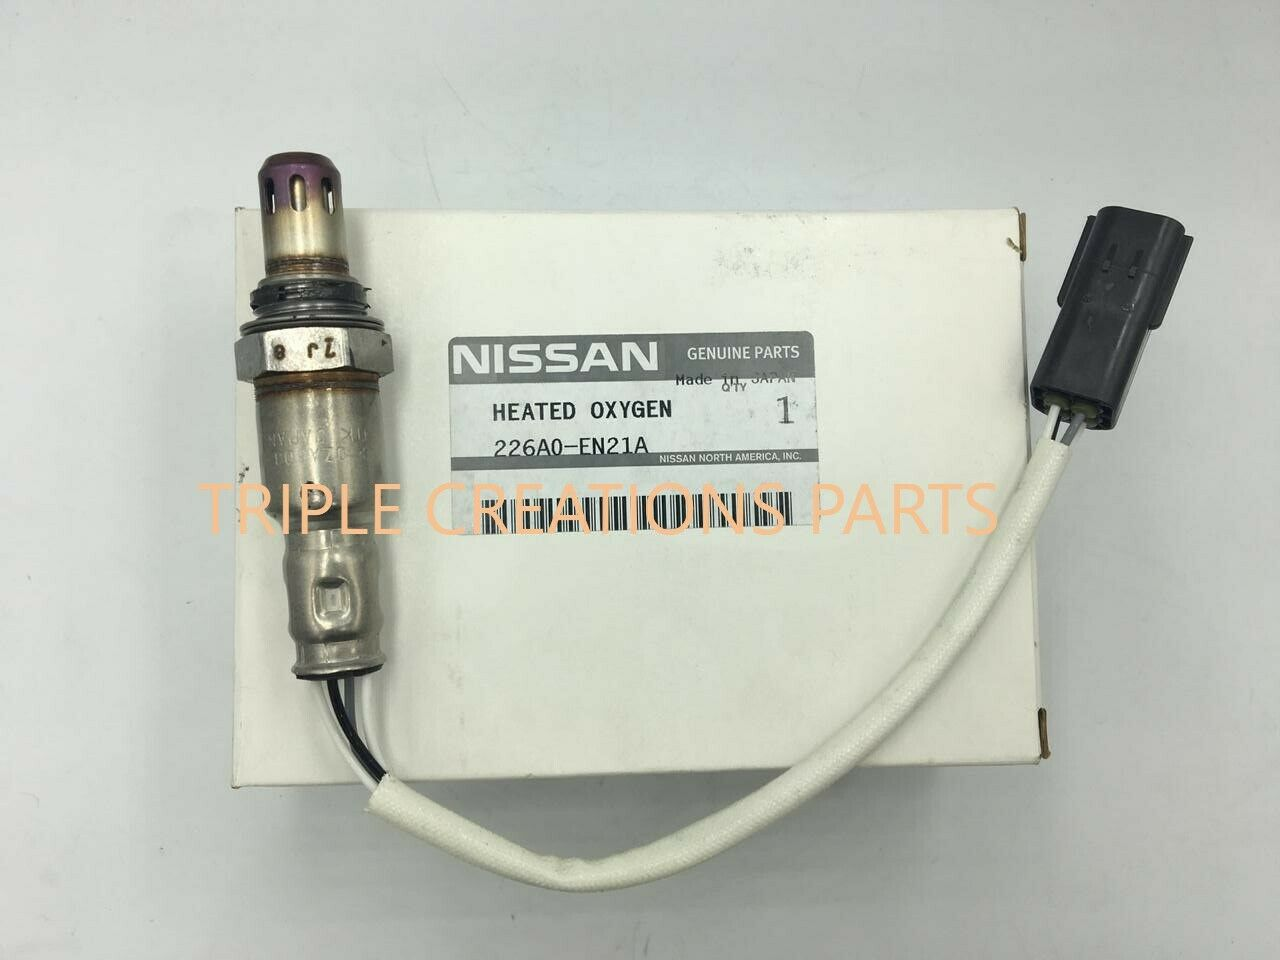 New OEM Genuine Nissan Rear Heated Oxygen Sensor 226A0-EN21A USA Seller